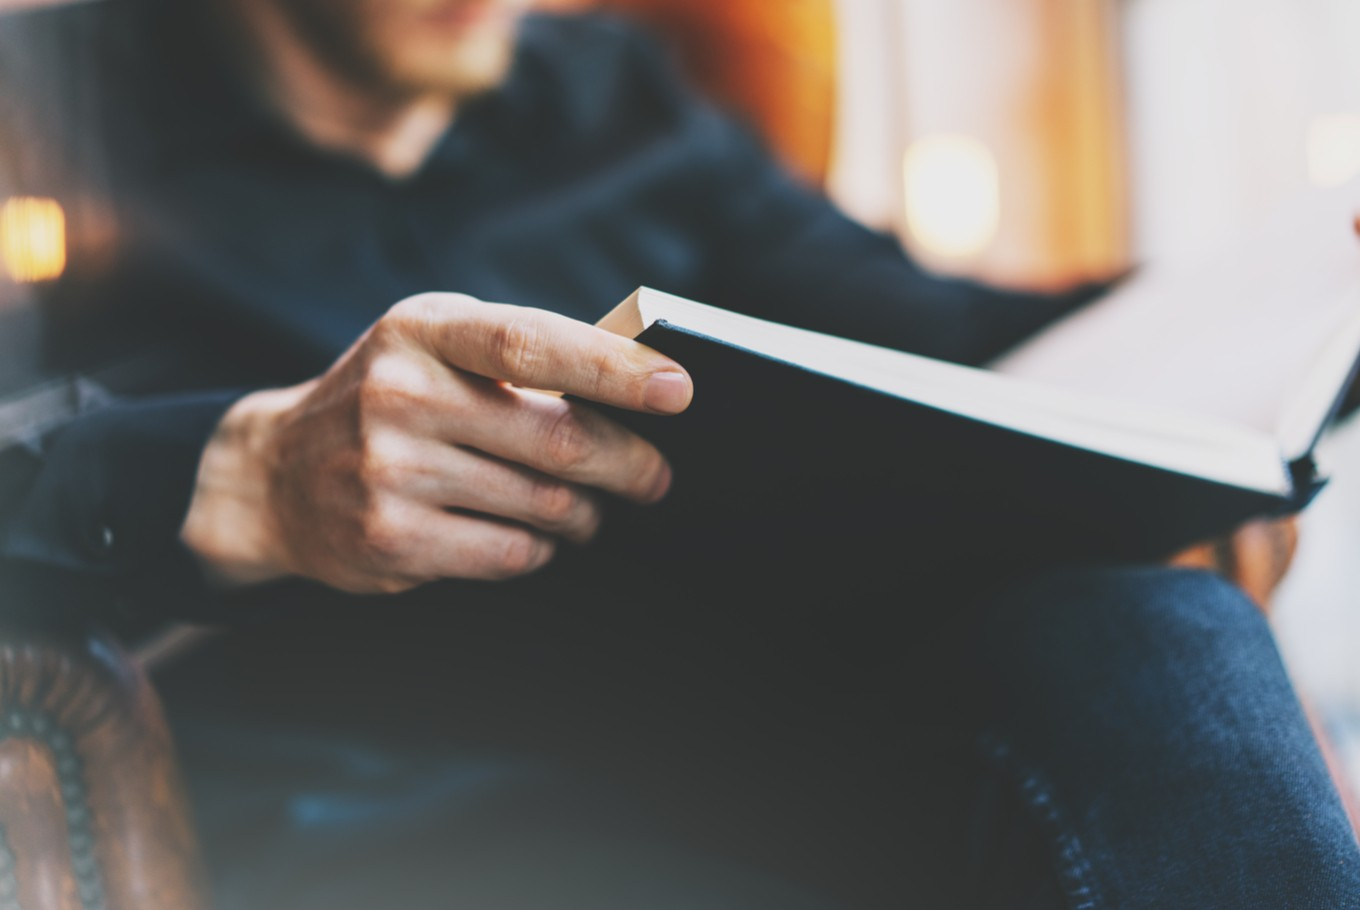 Survive the book: How to read and actually understand nonfiction